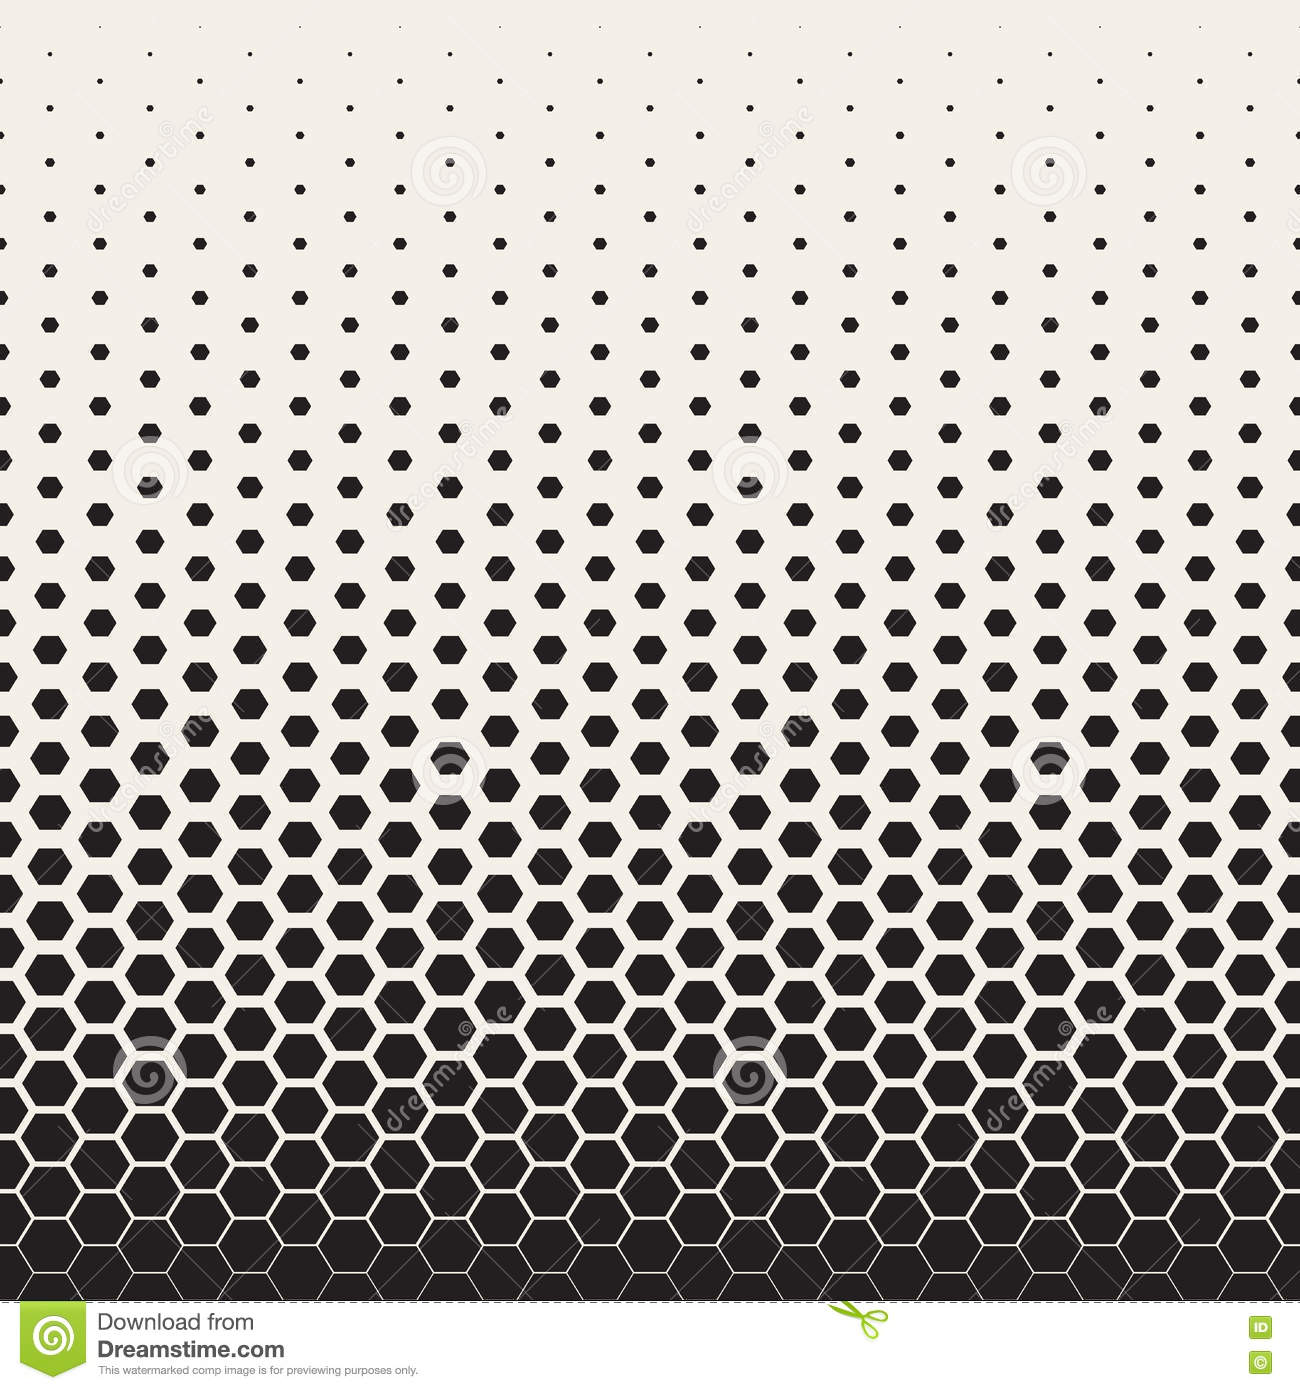 Vector Seamless Black And White Transition Halftone